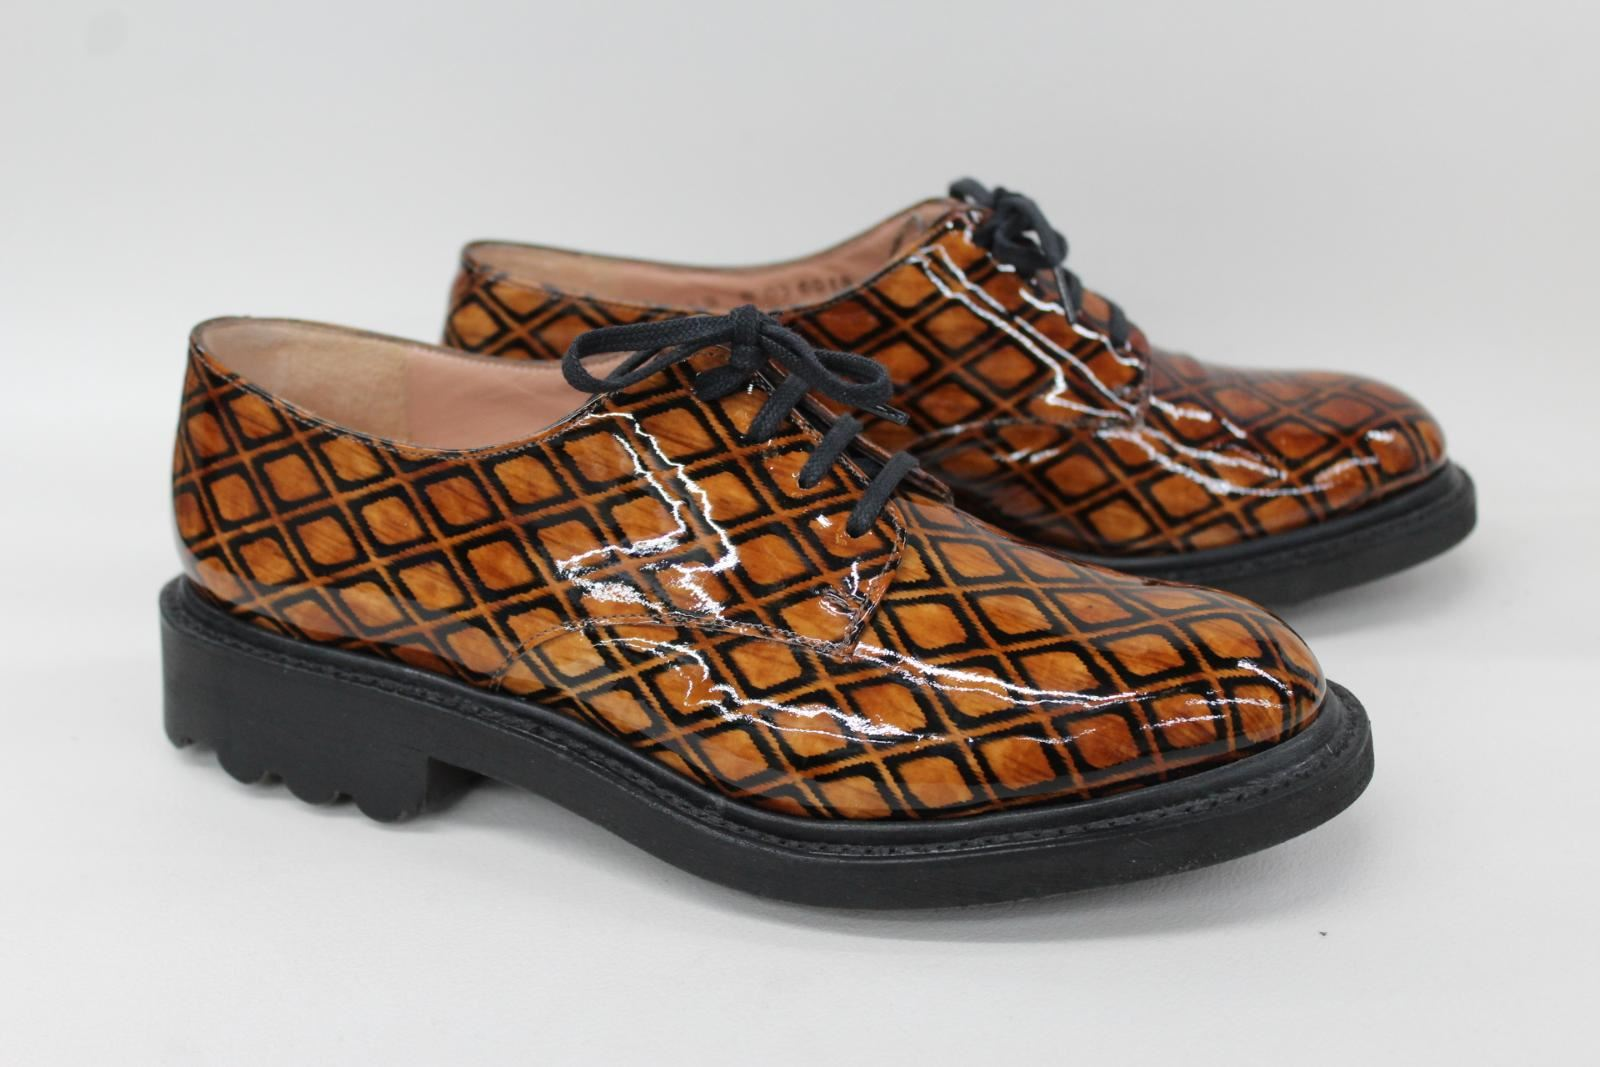 ROBERT-CLERGERIE-Ladies-Brown-Black-Patterned-Patent-Leather-Shoes-UK3-5-EU36-5